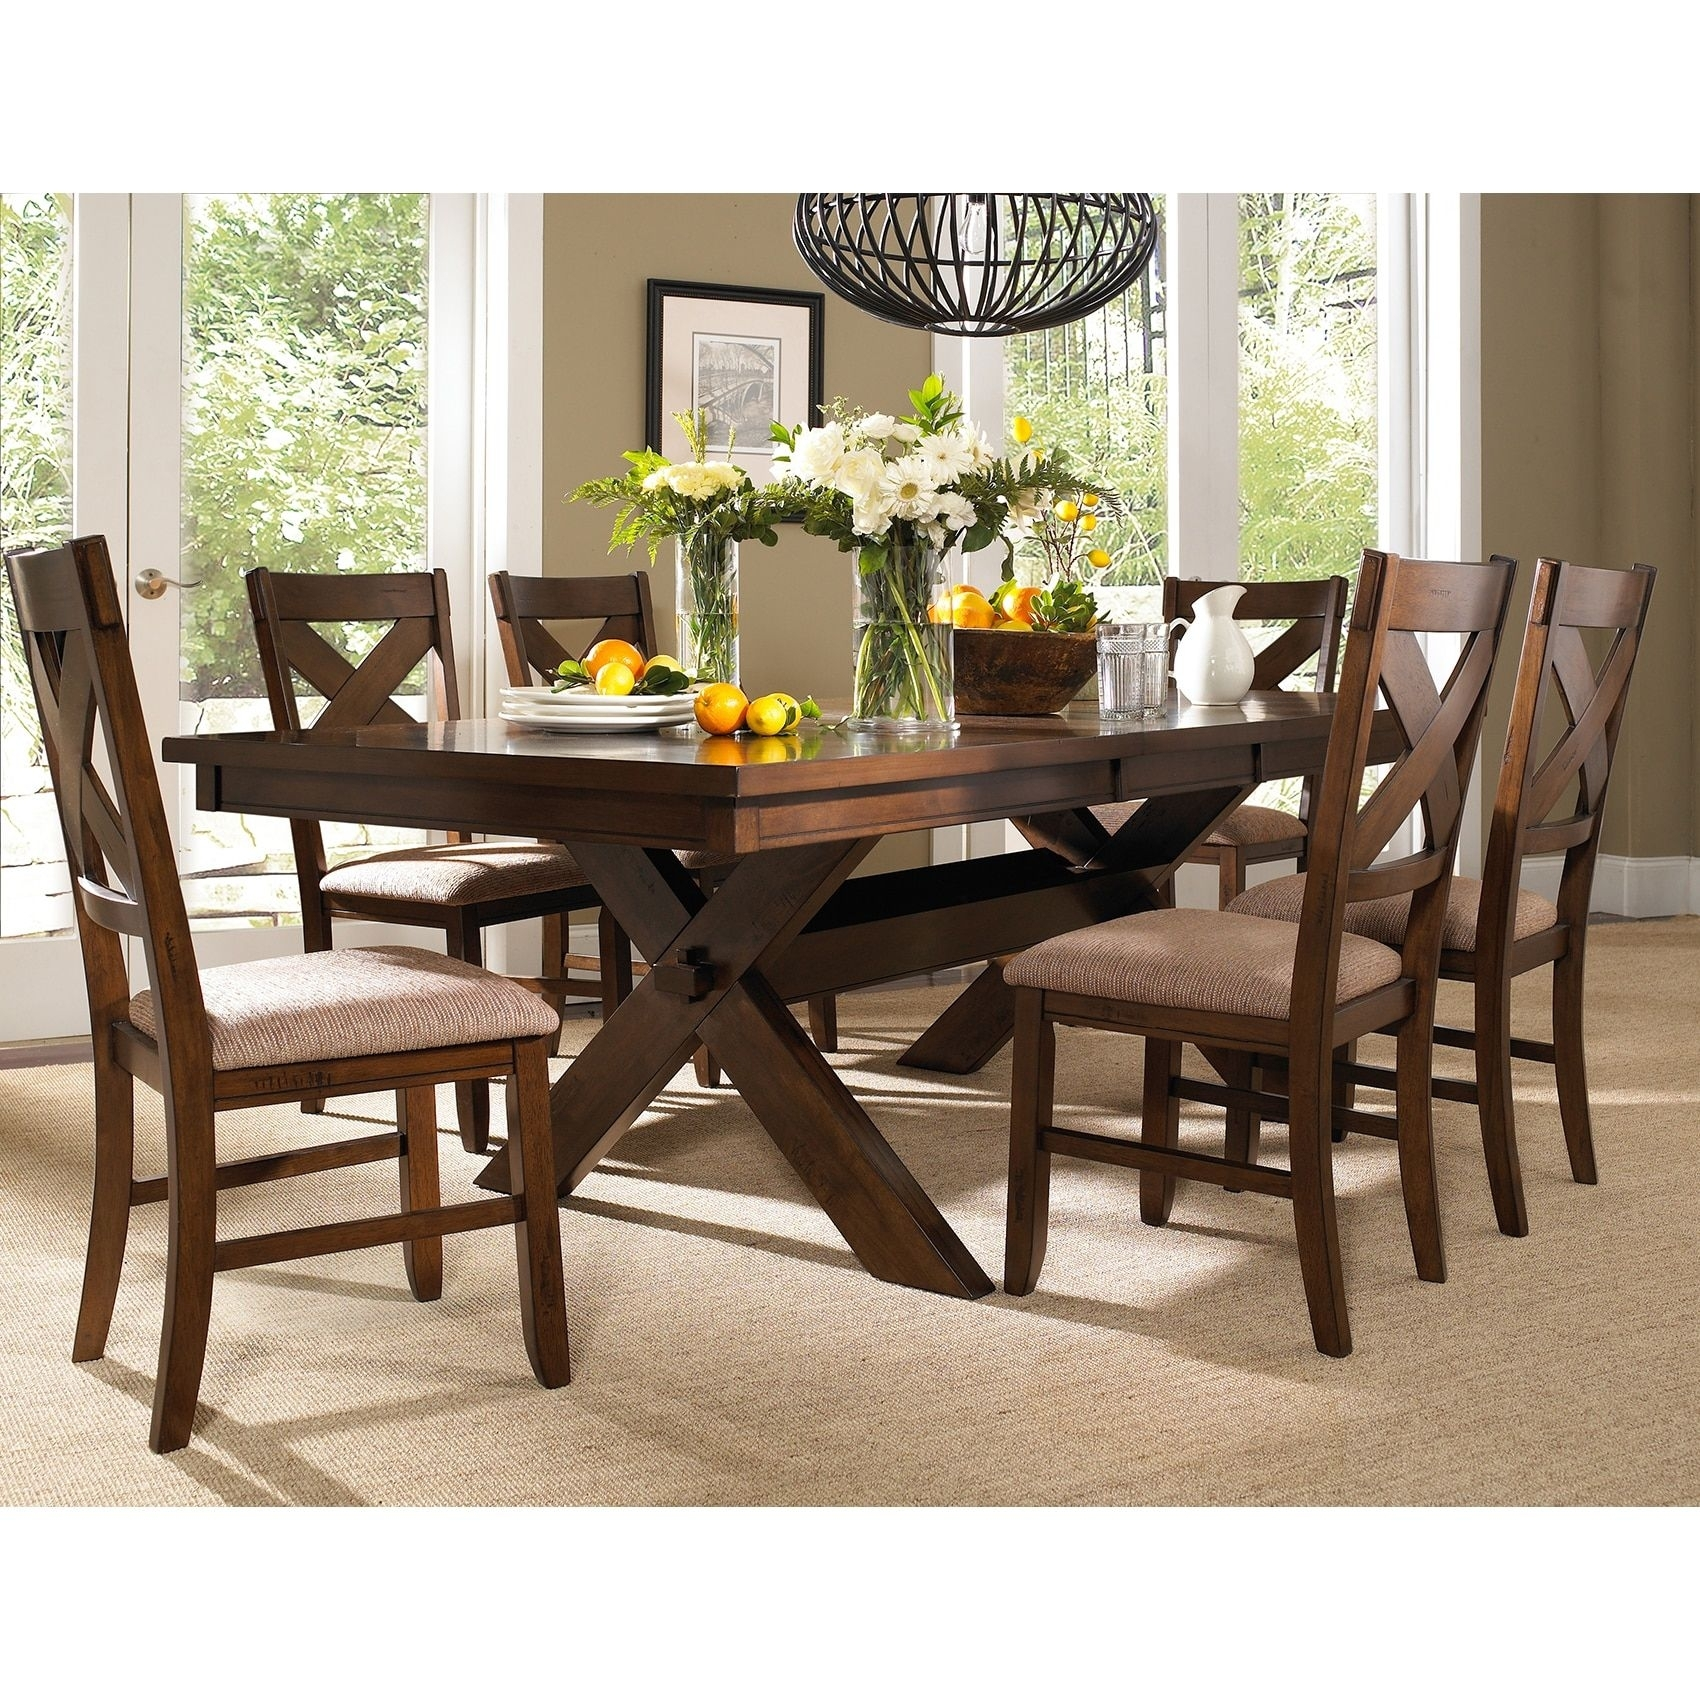 Featured Image of Craftsman 7 Piece Rectangle Extension Dining Sets With Arm & Side Chairs